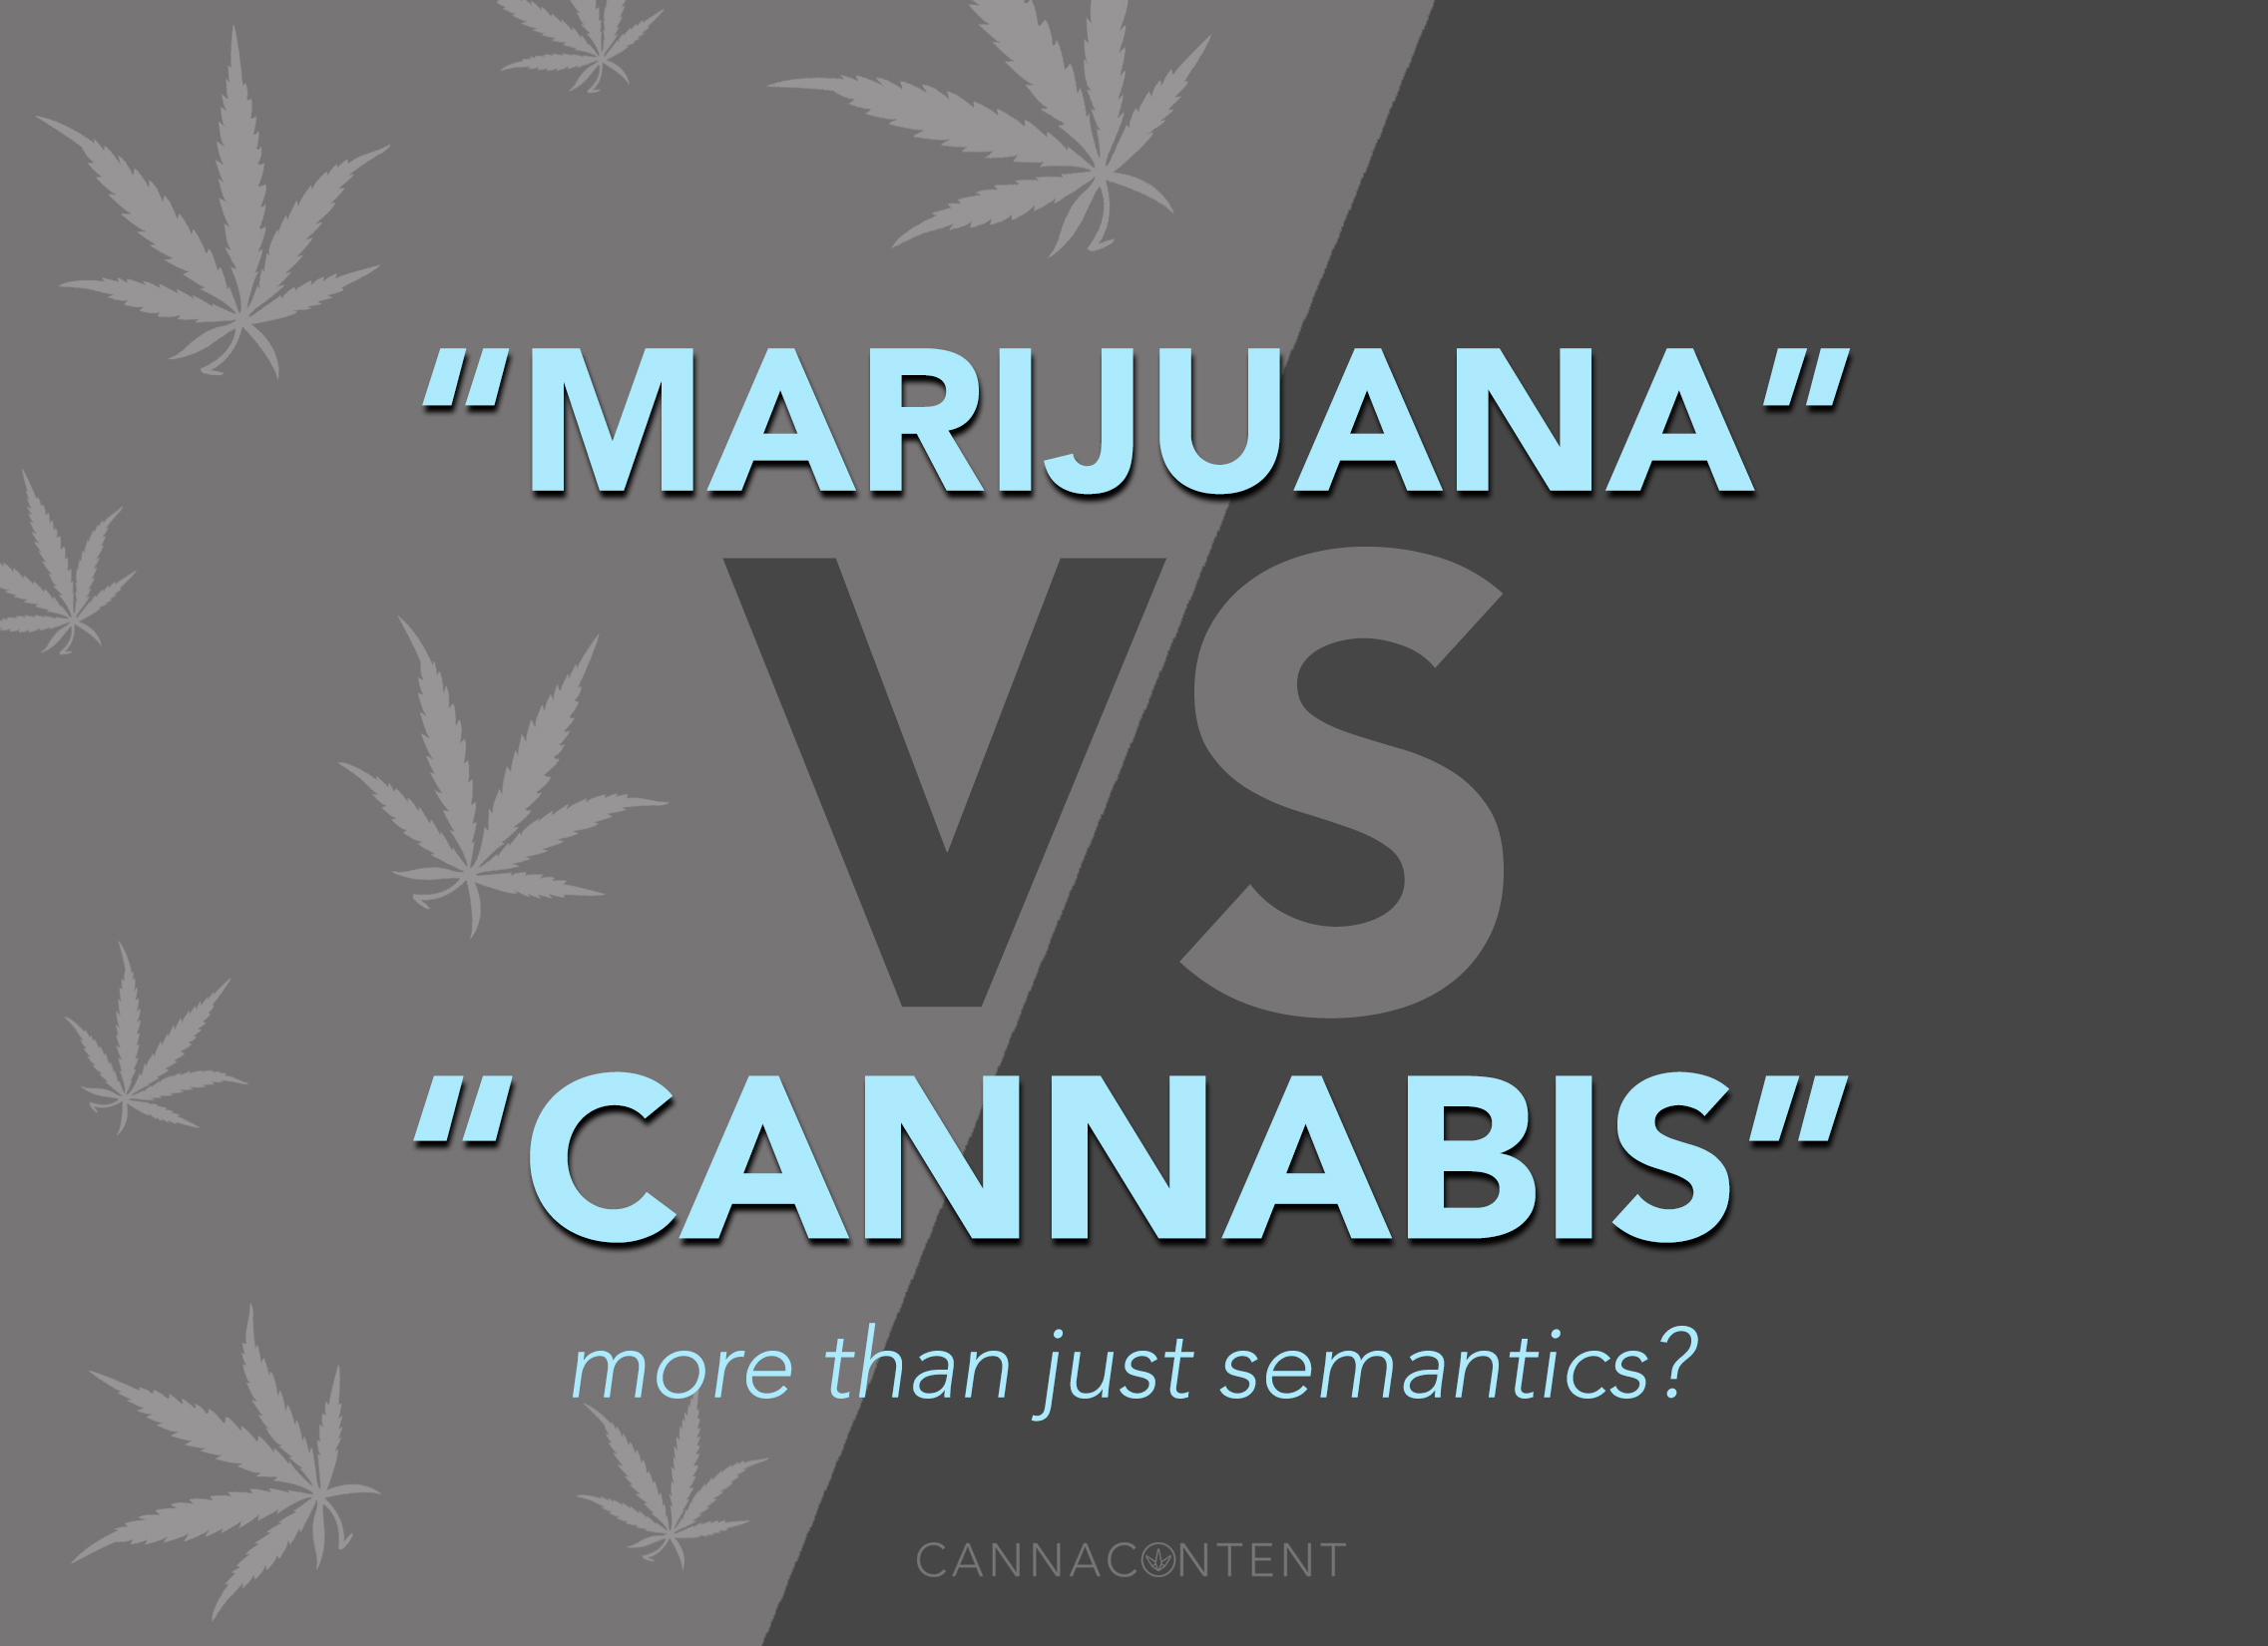 Why do we call it marijuana and not its proper name, cannabis?